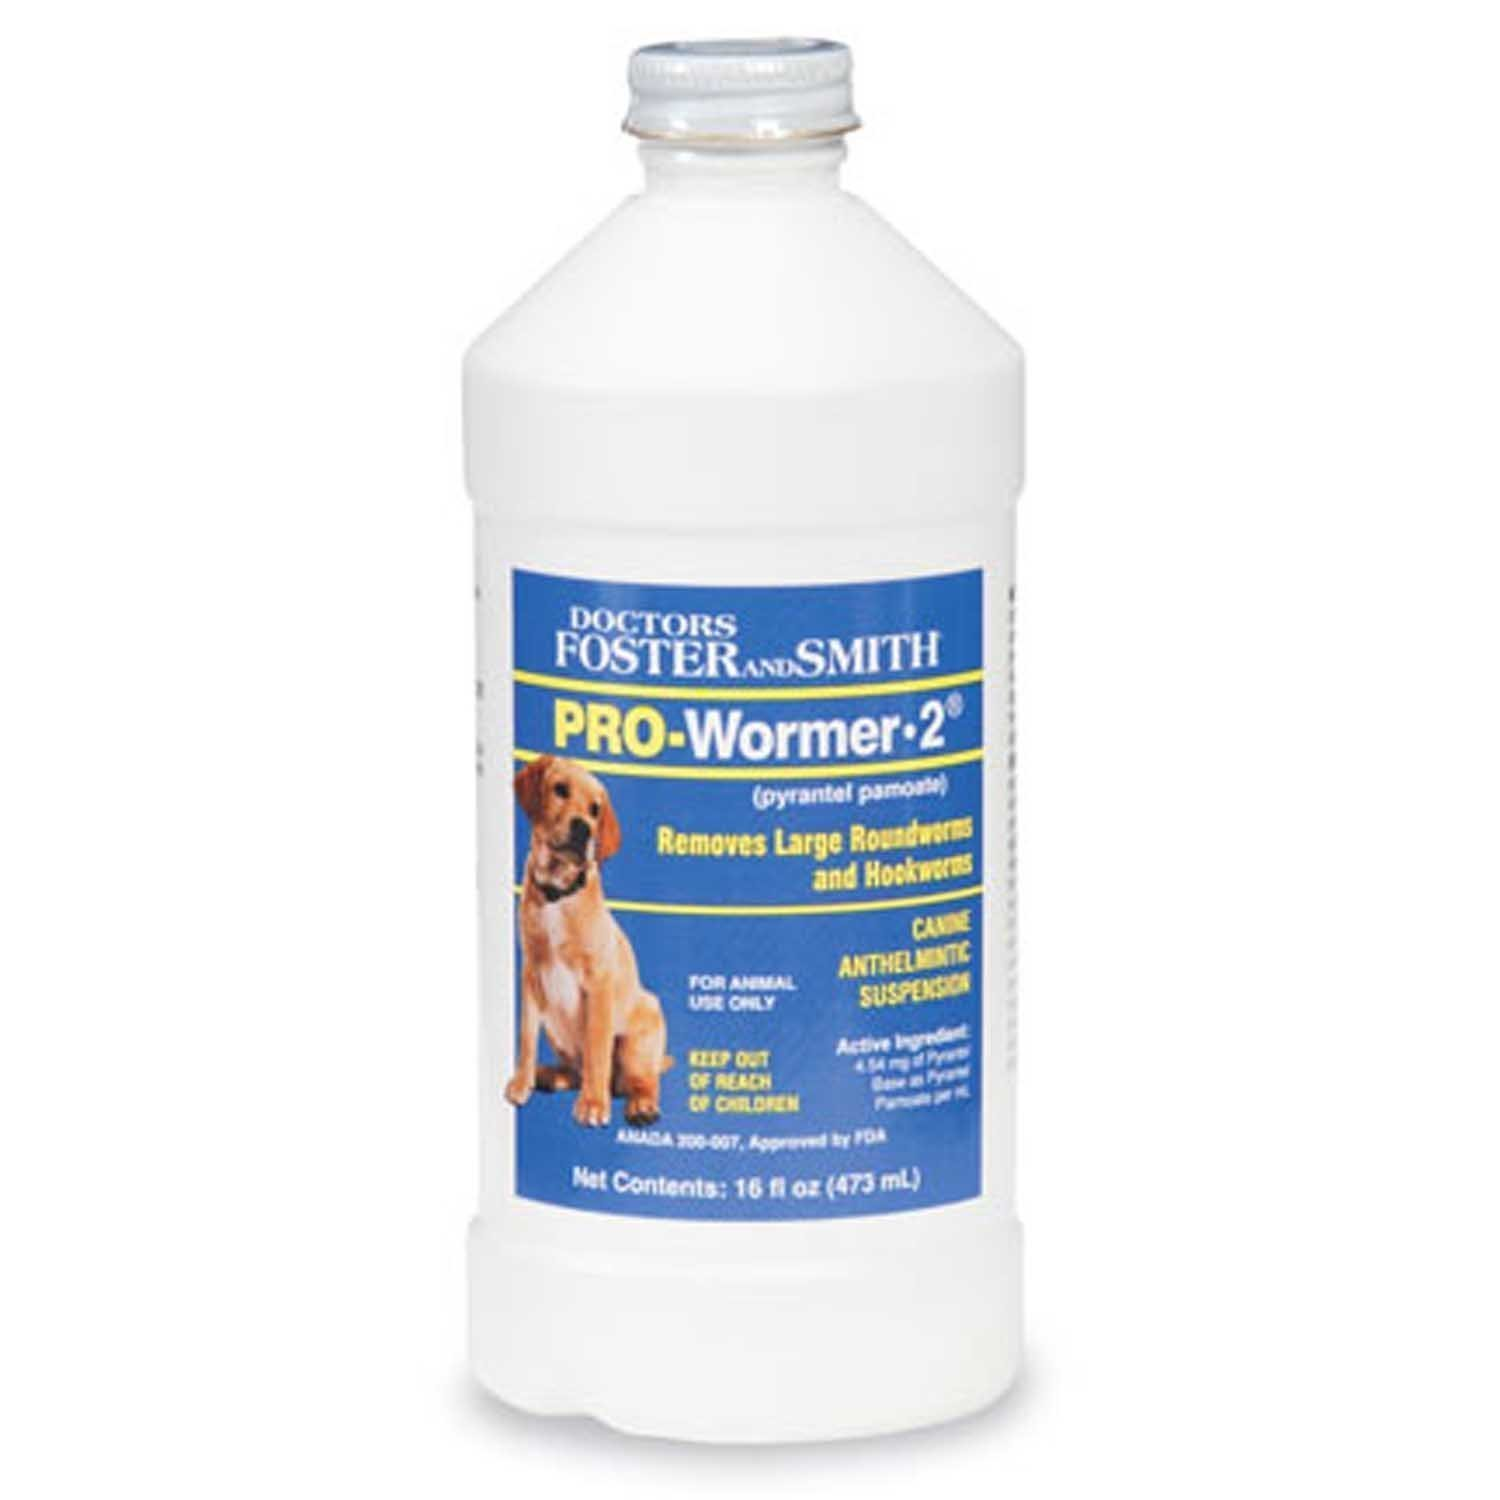 Doctors Foster + Smith Pro-Wormer Liquid dog Wormer 2x -16oz - 1 Pint - by Same active Ingredient as Nemex-2 (PYRANTEL PAMOATE)